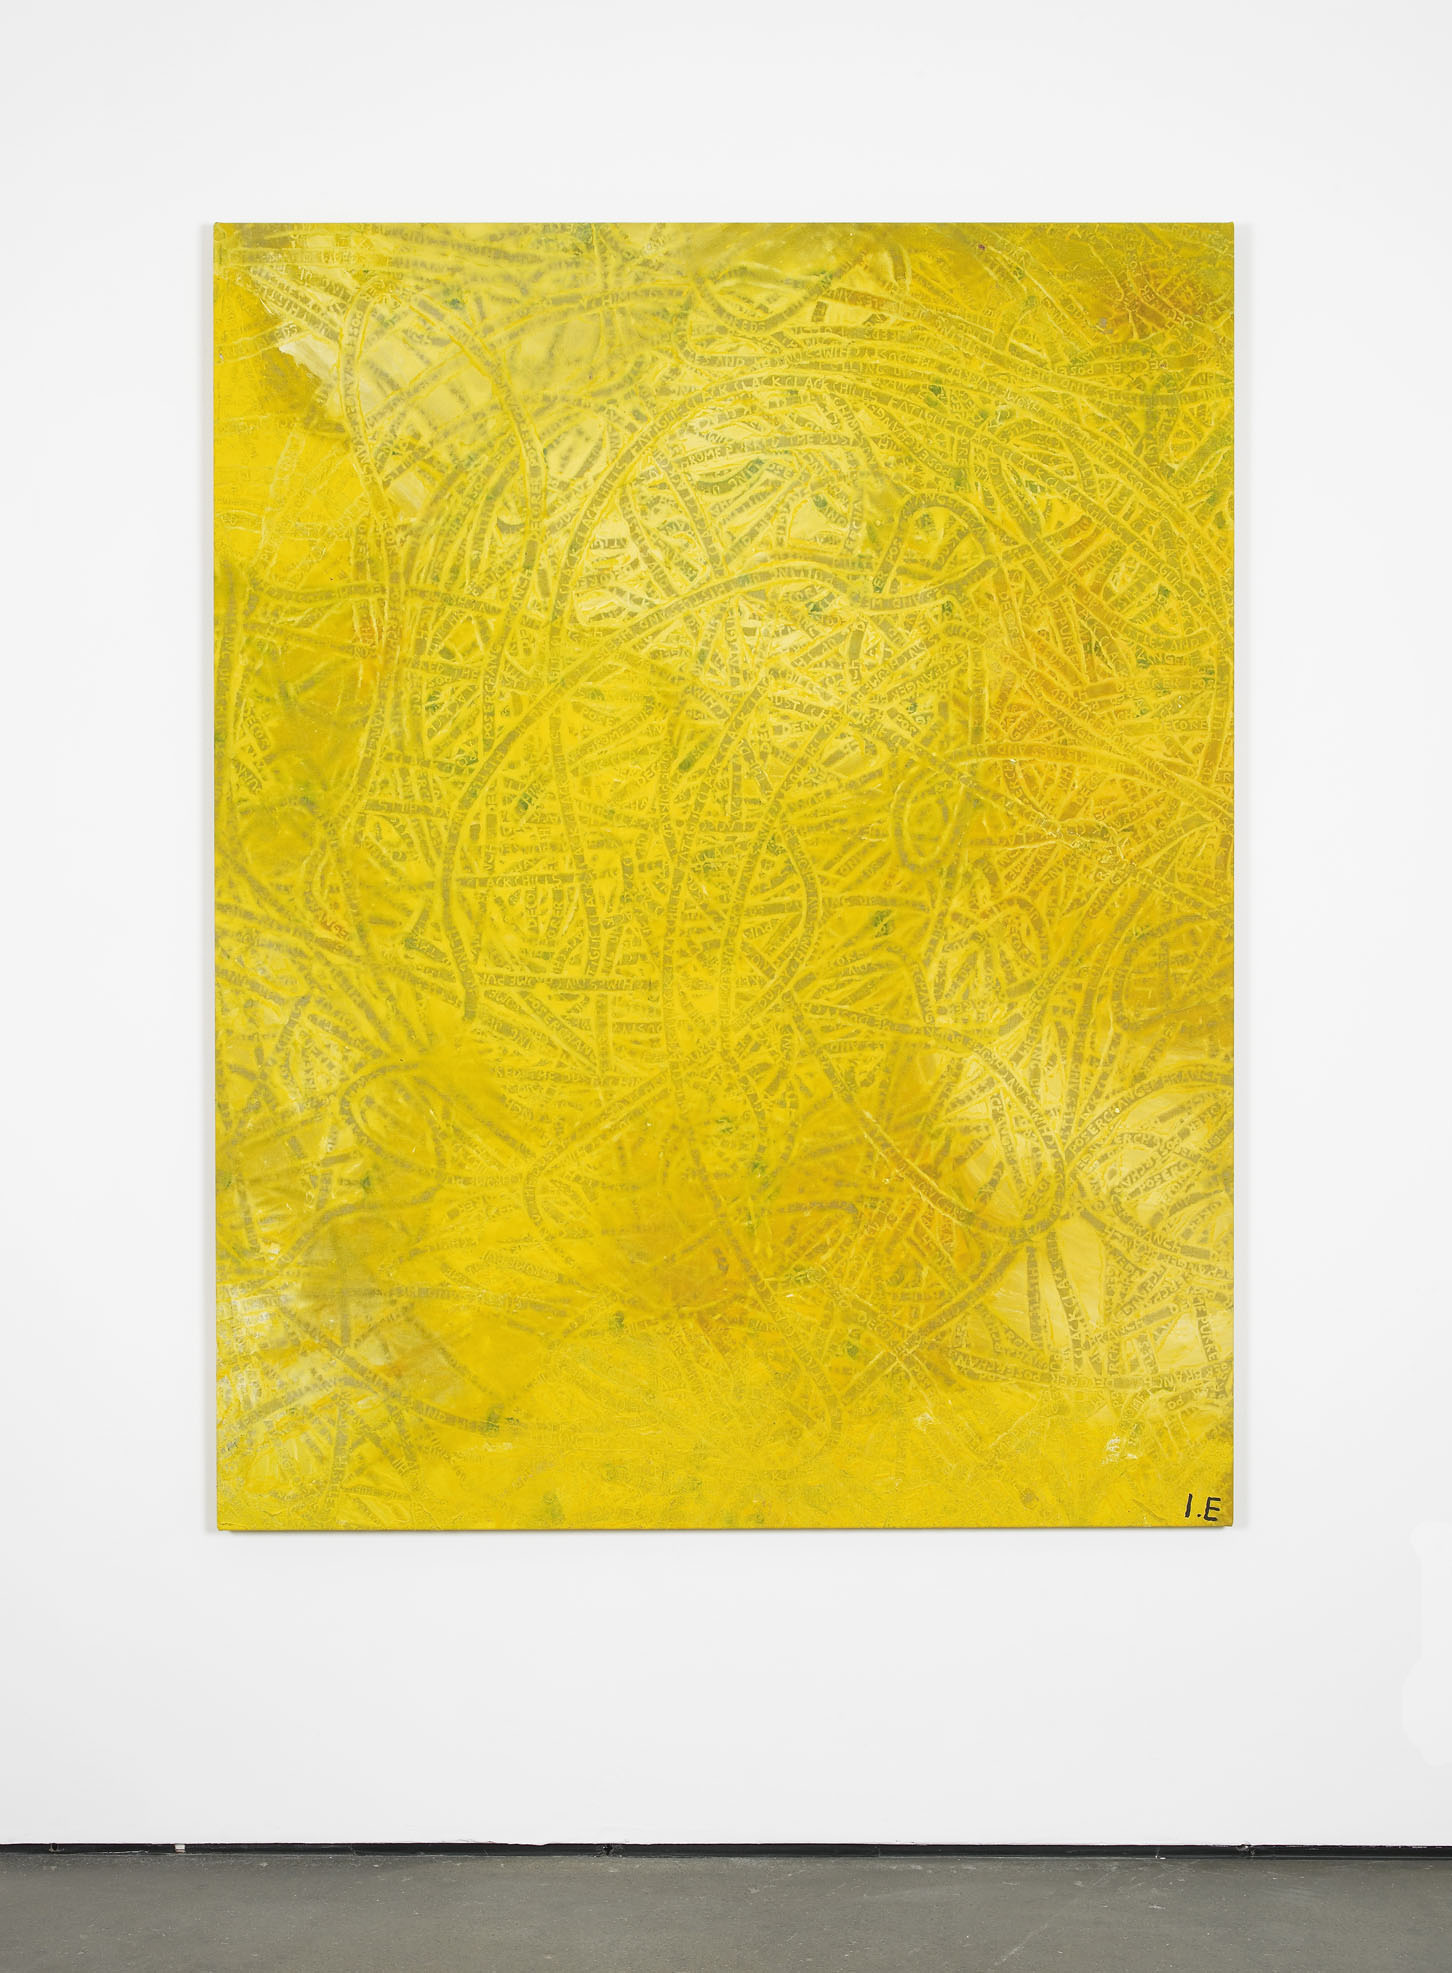 Tracks (Secret Greenland)  2013  Acrylics and latex house paint on primed linen  180 x 140 cm / 70.8 x 55.1 in